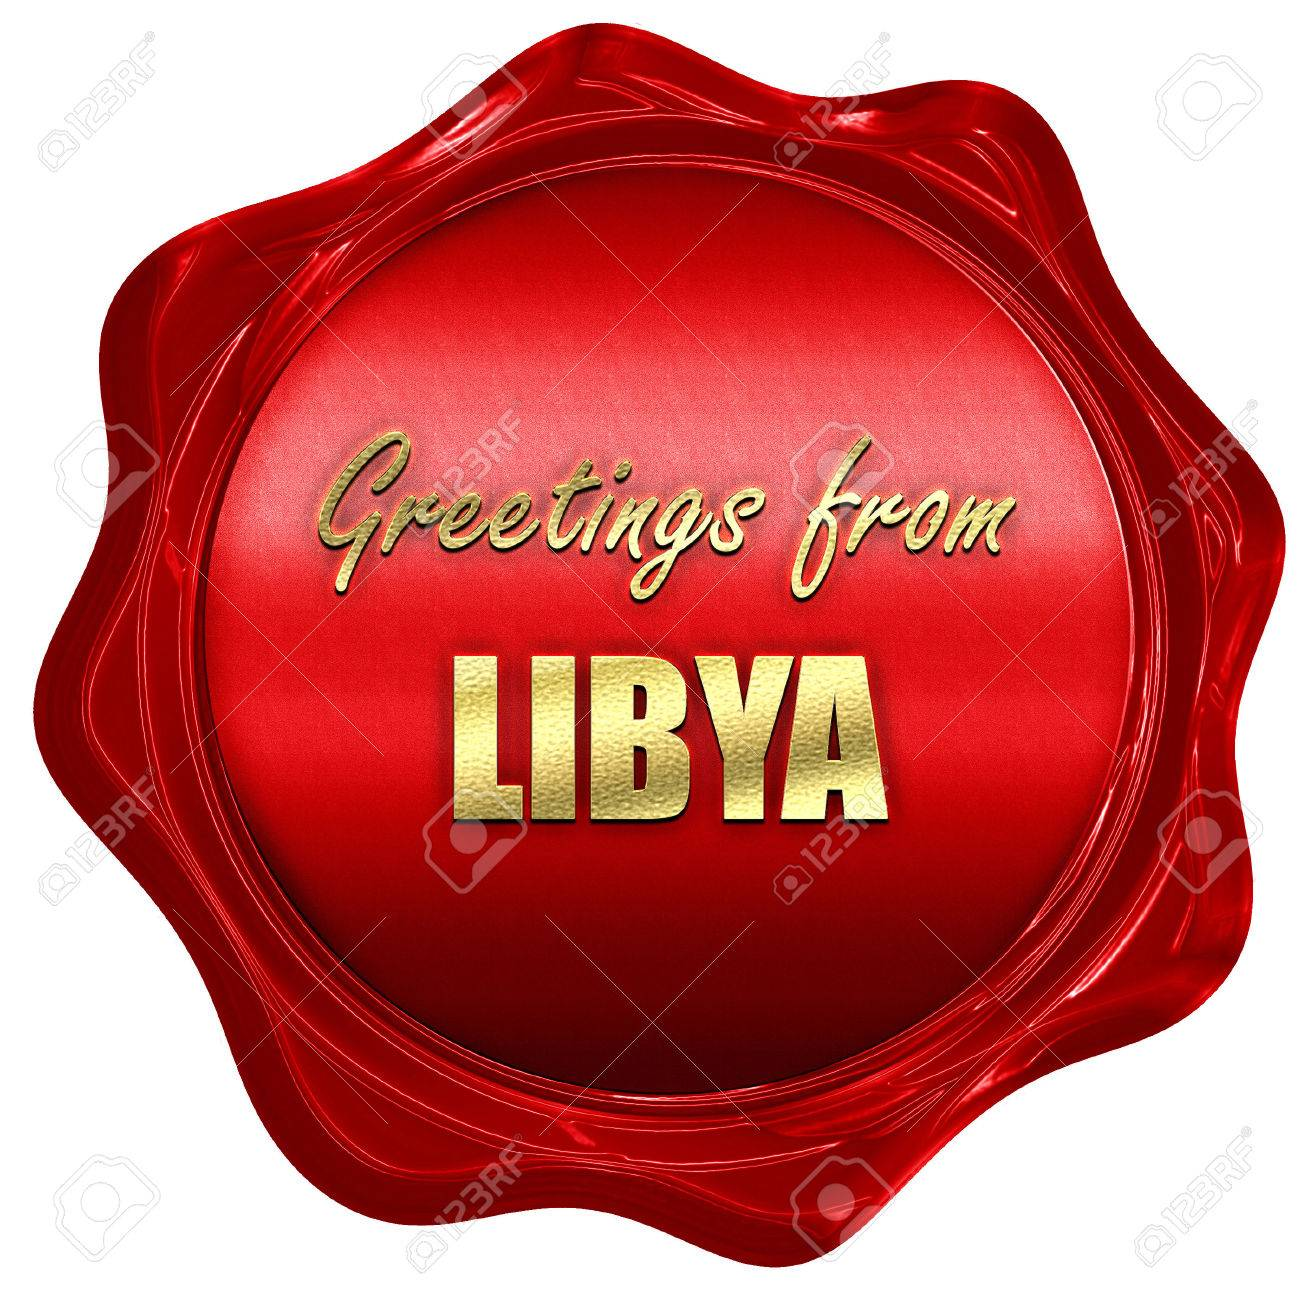 Greetings From Libya Card With Some Soft Highlights 3d Rendering